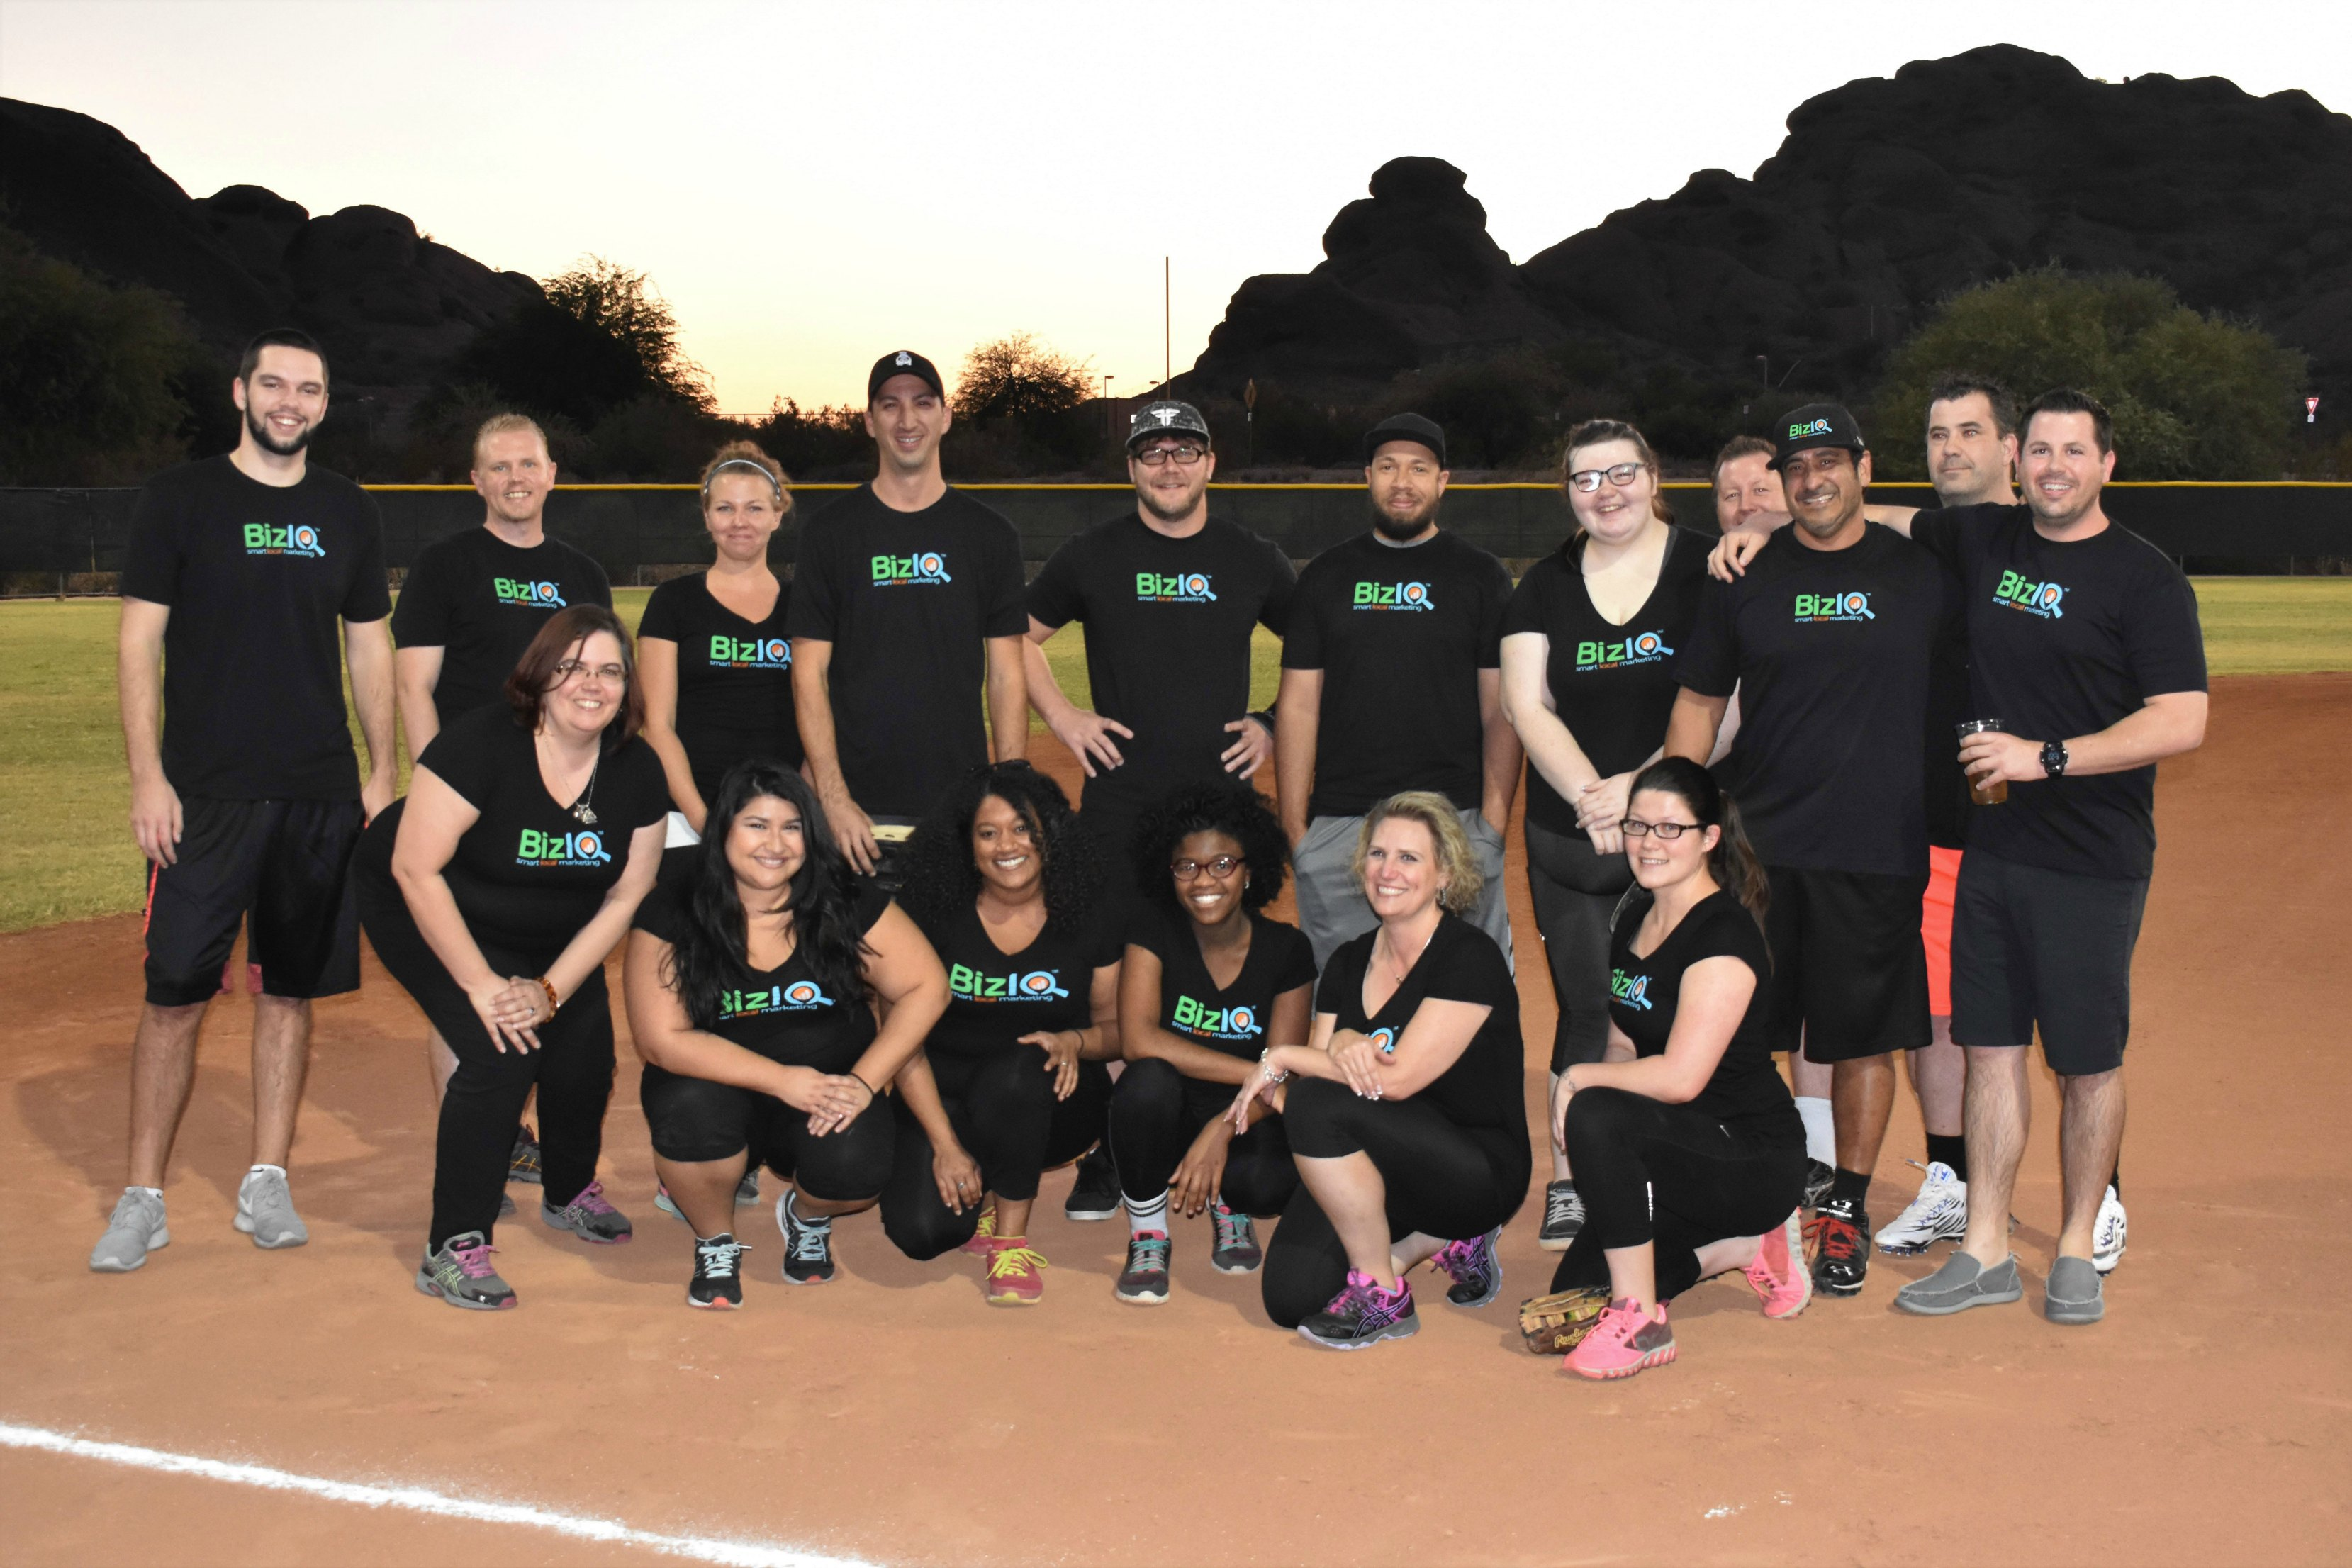 biziq softball team